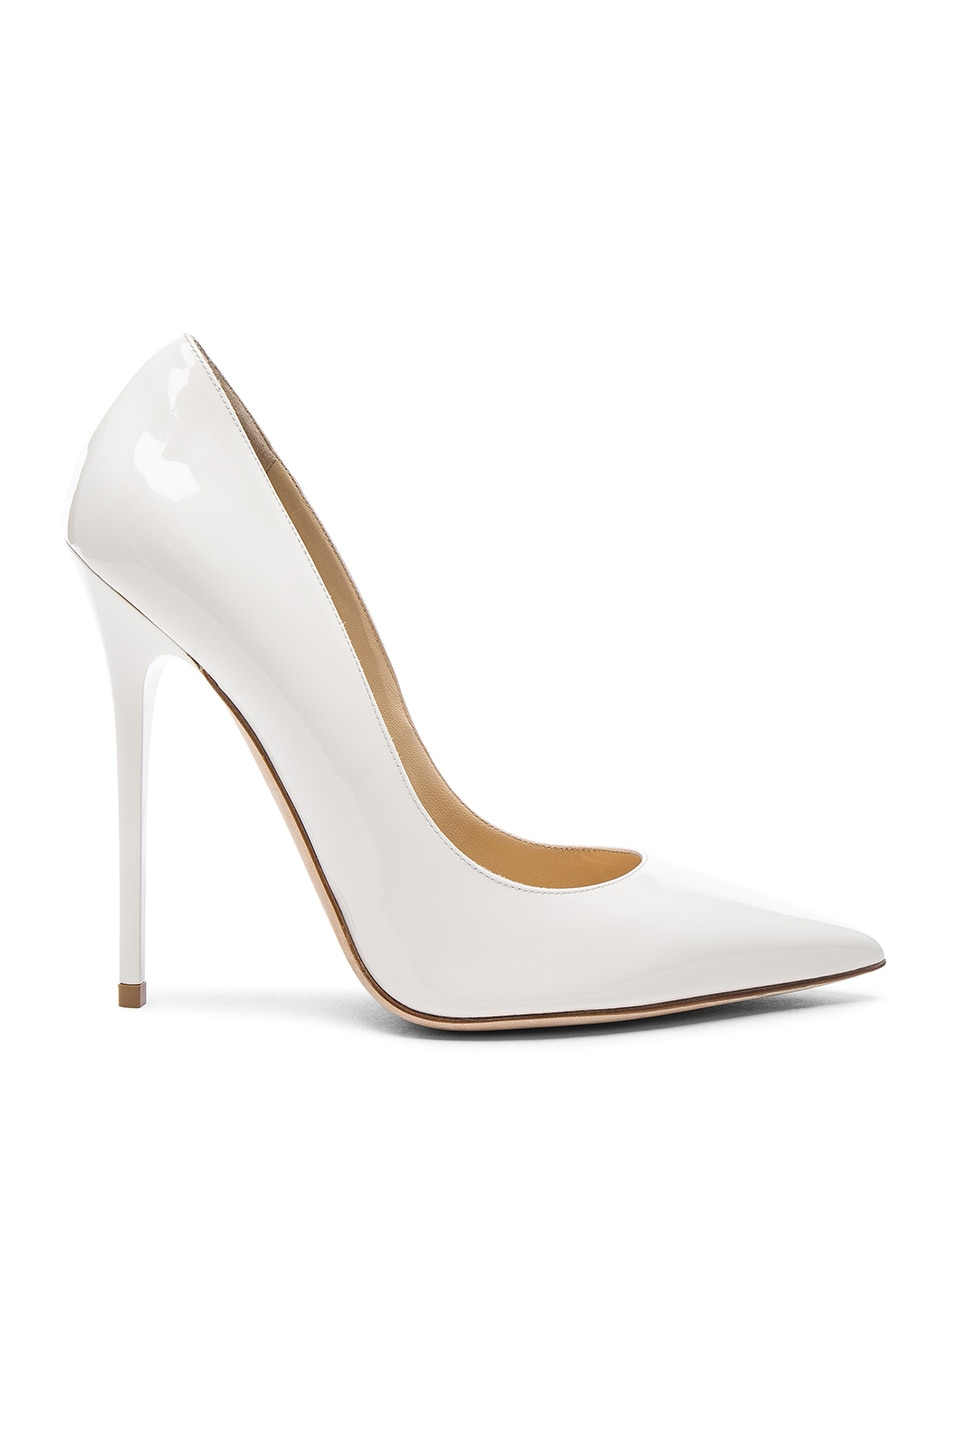 Image 1 of Jimmy Choo Patent Leather Anouk Pumps in Chalk